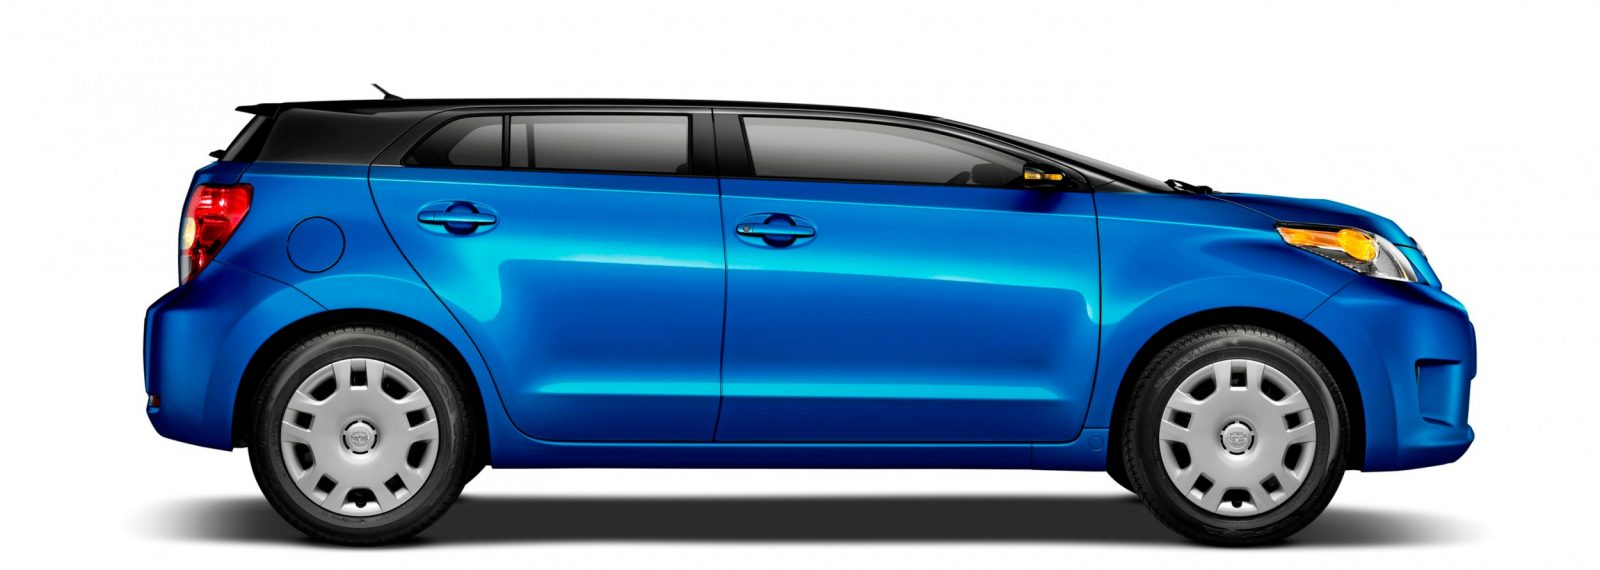 2014 Scion Xd Blue Black Two Tone 3 Roof Chop